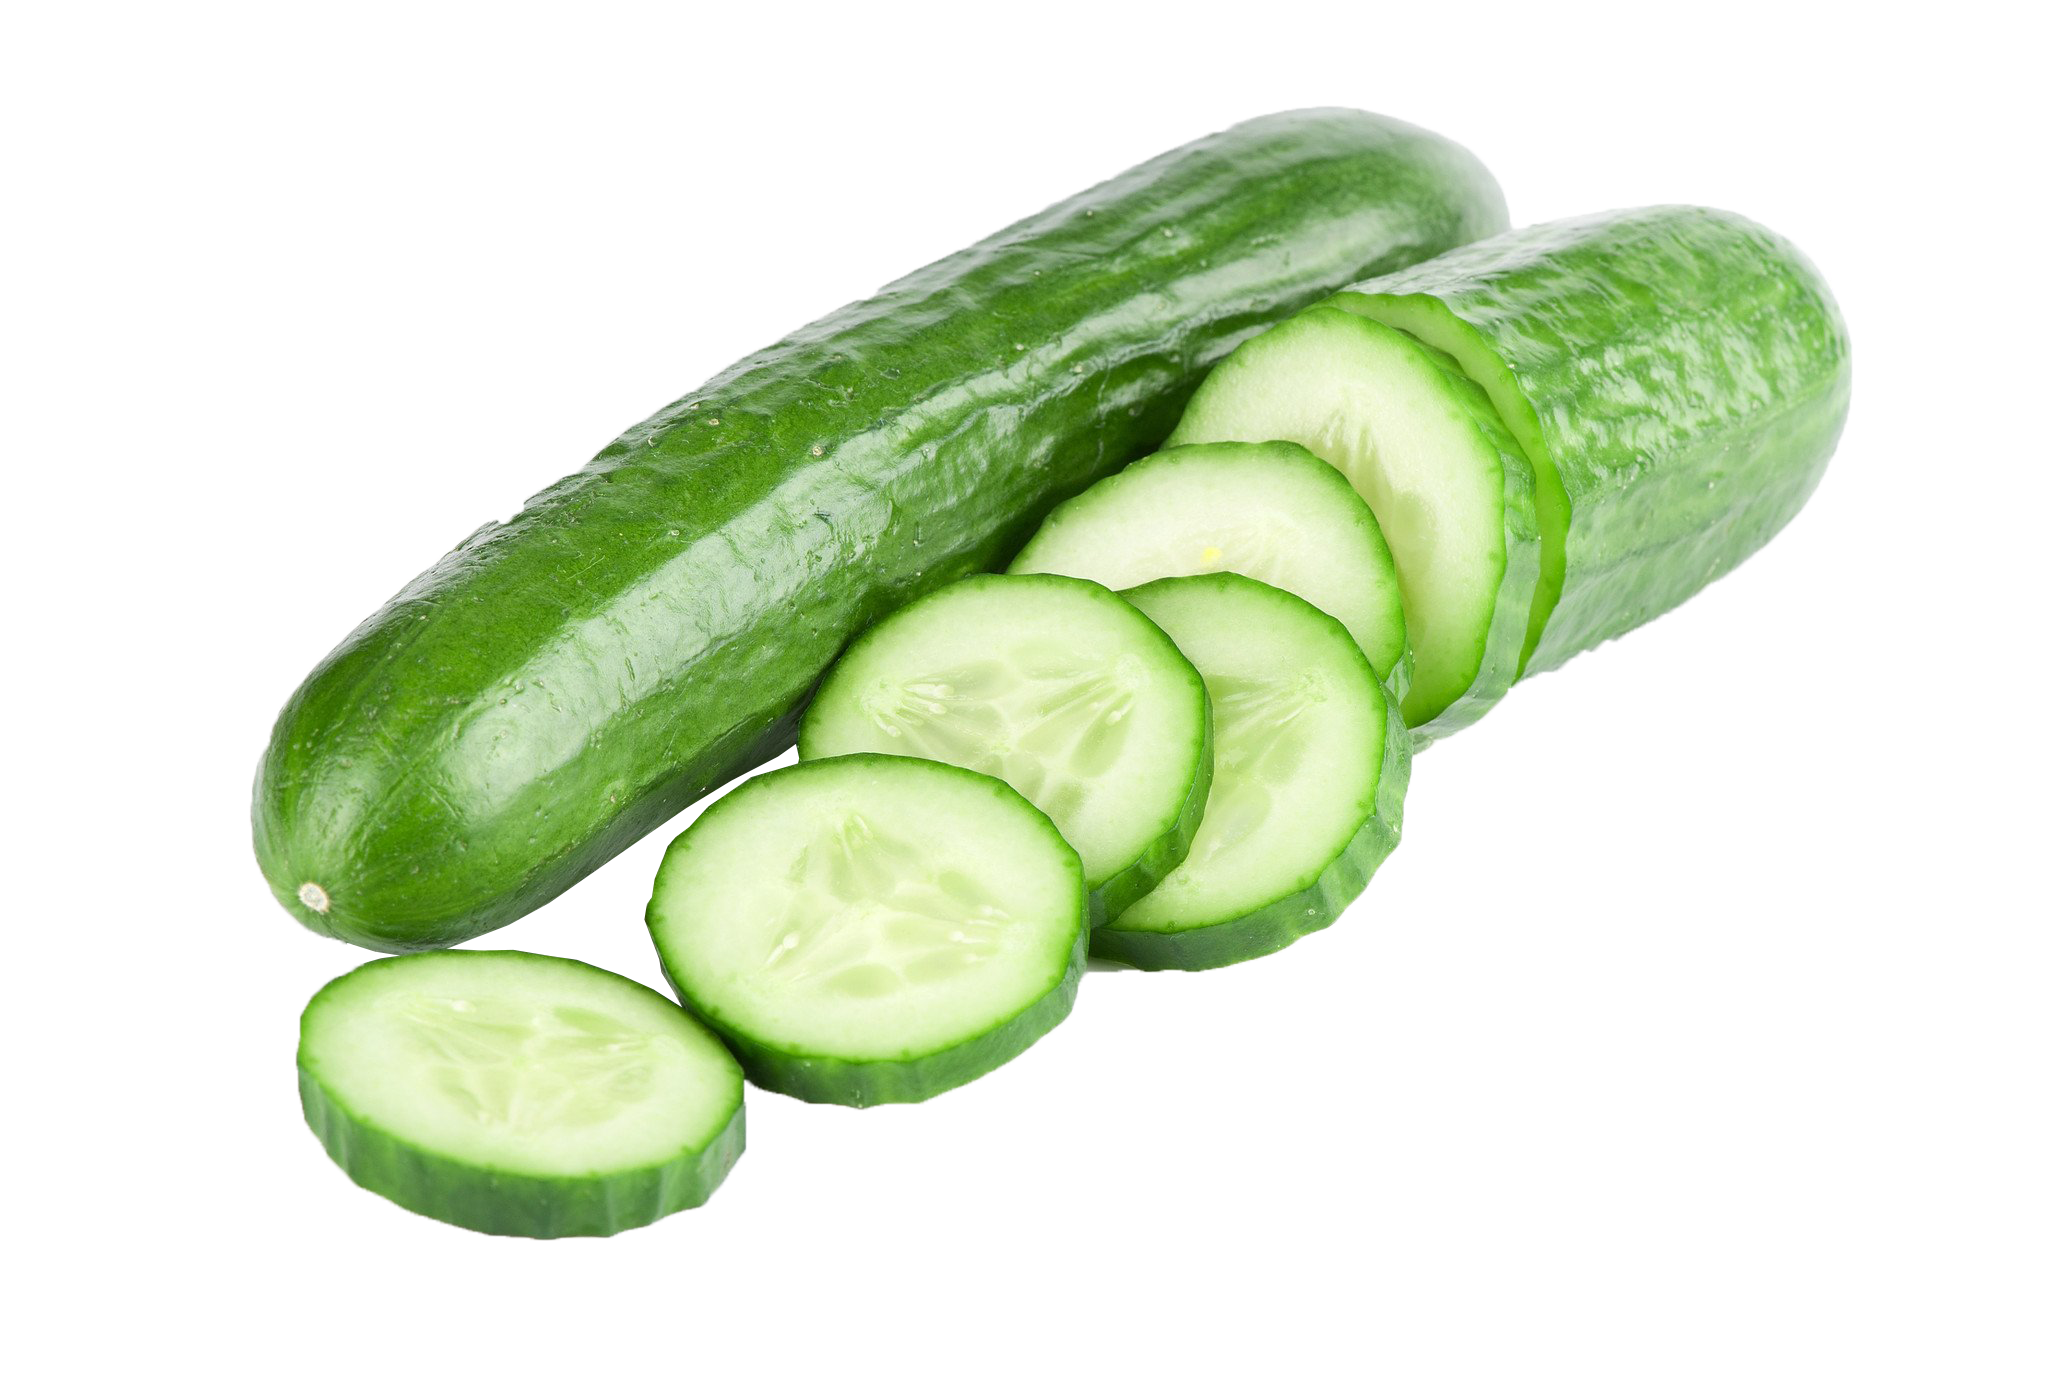 clip royalty free download Png image purepng free. Cucumber vector transparent